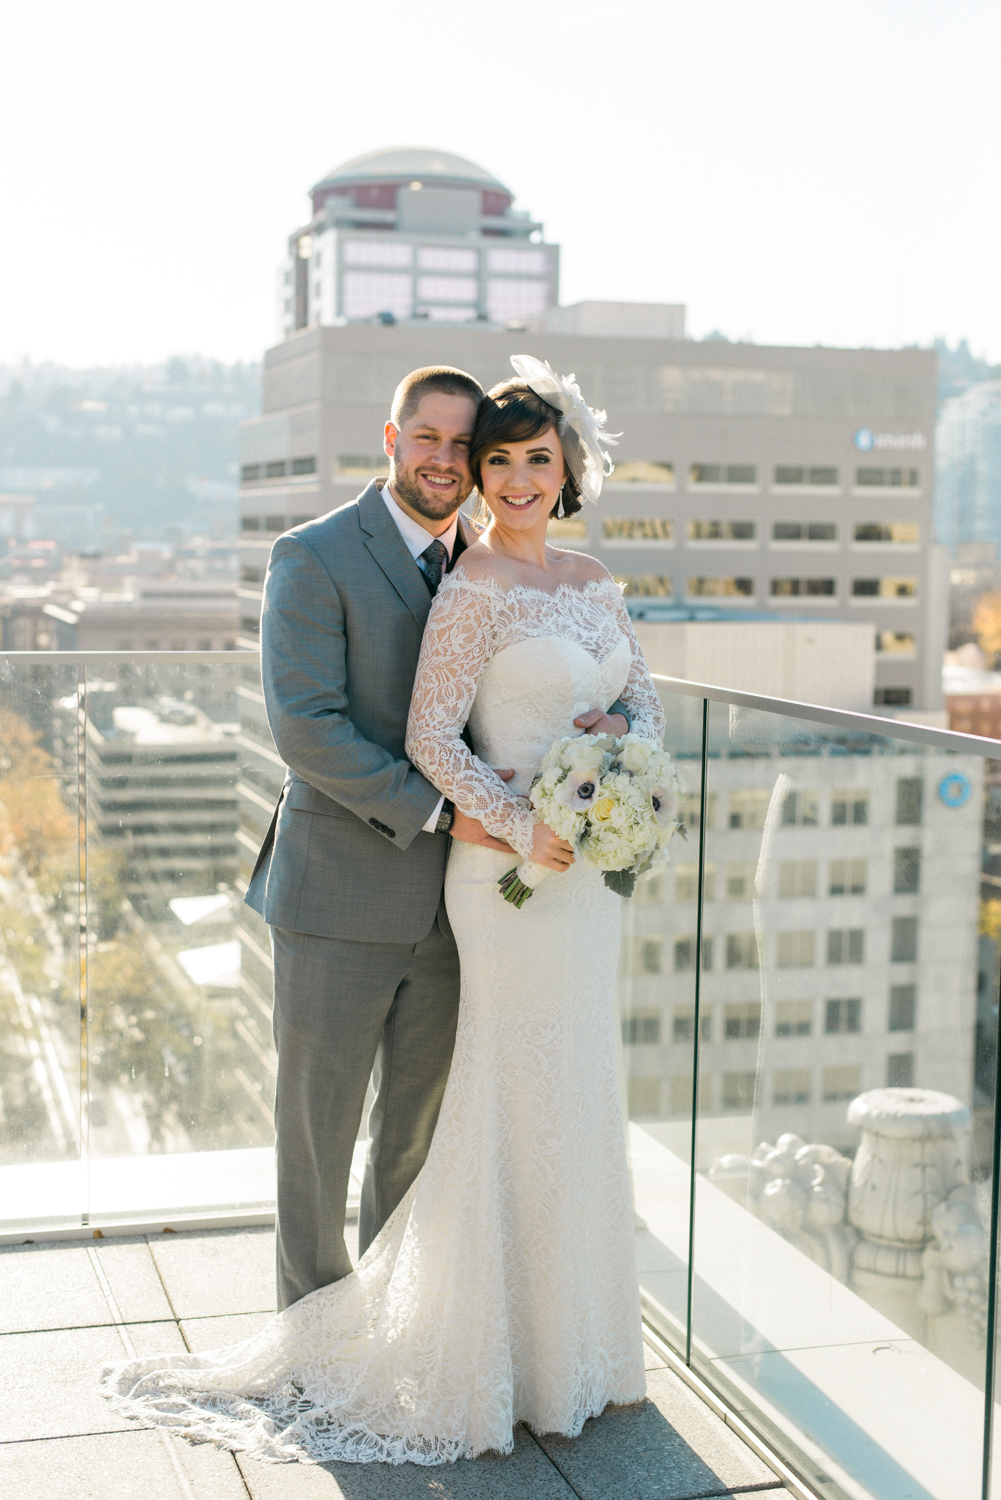 the-nines-rooftop-wedding-portland-oregon-cityscape-bride-and-groom-shelley-marie-photo-1